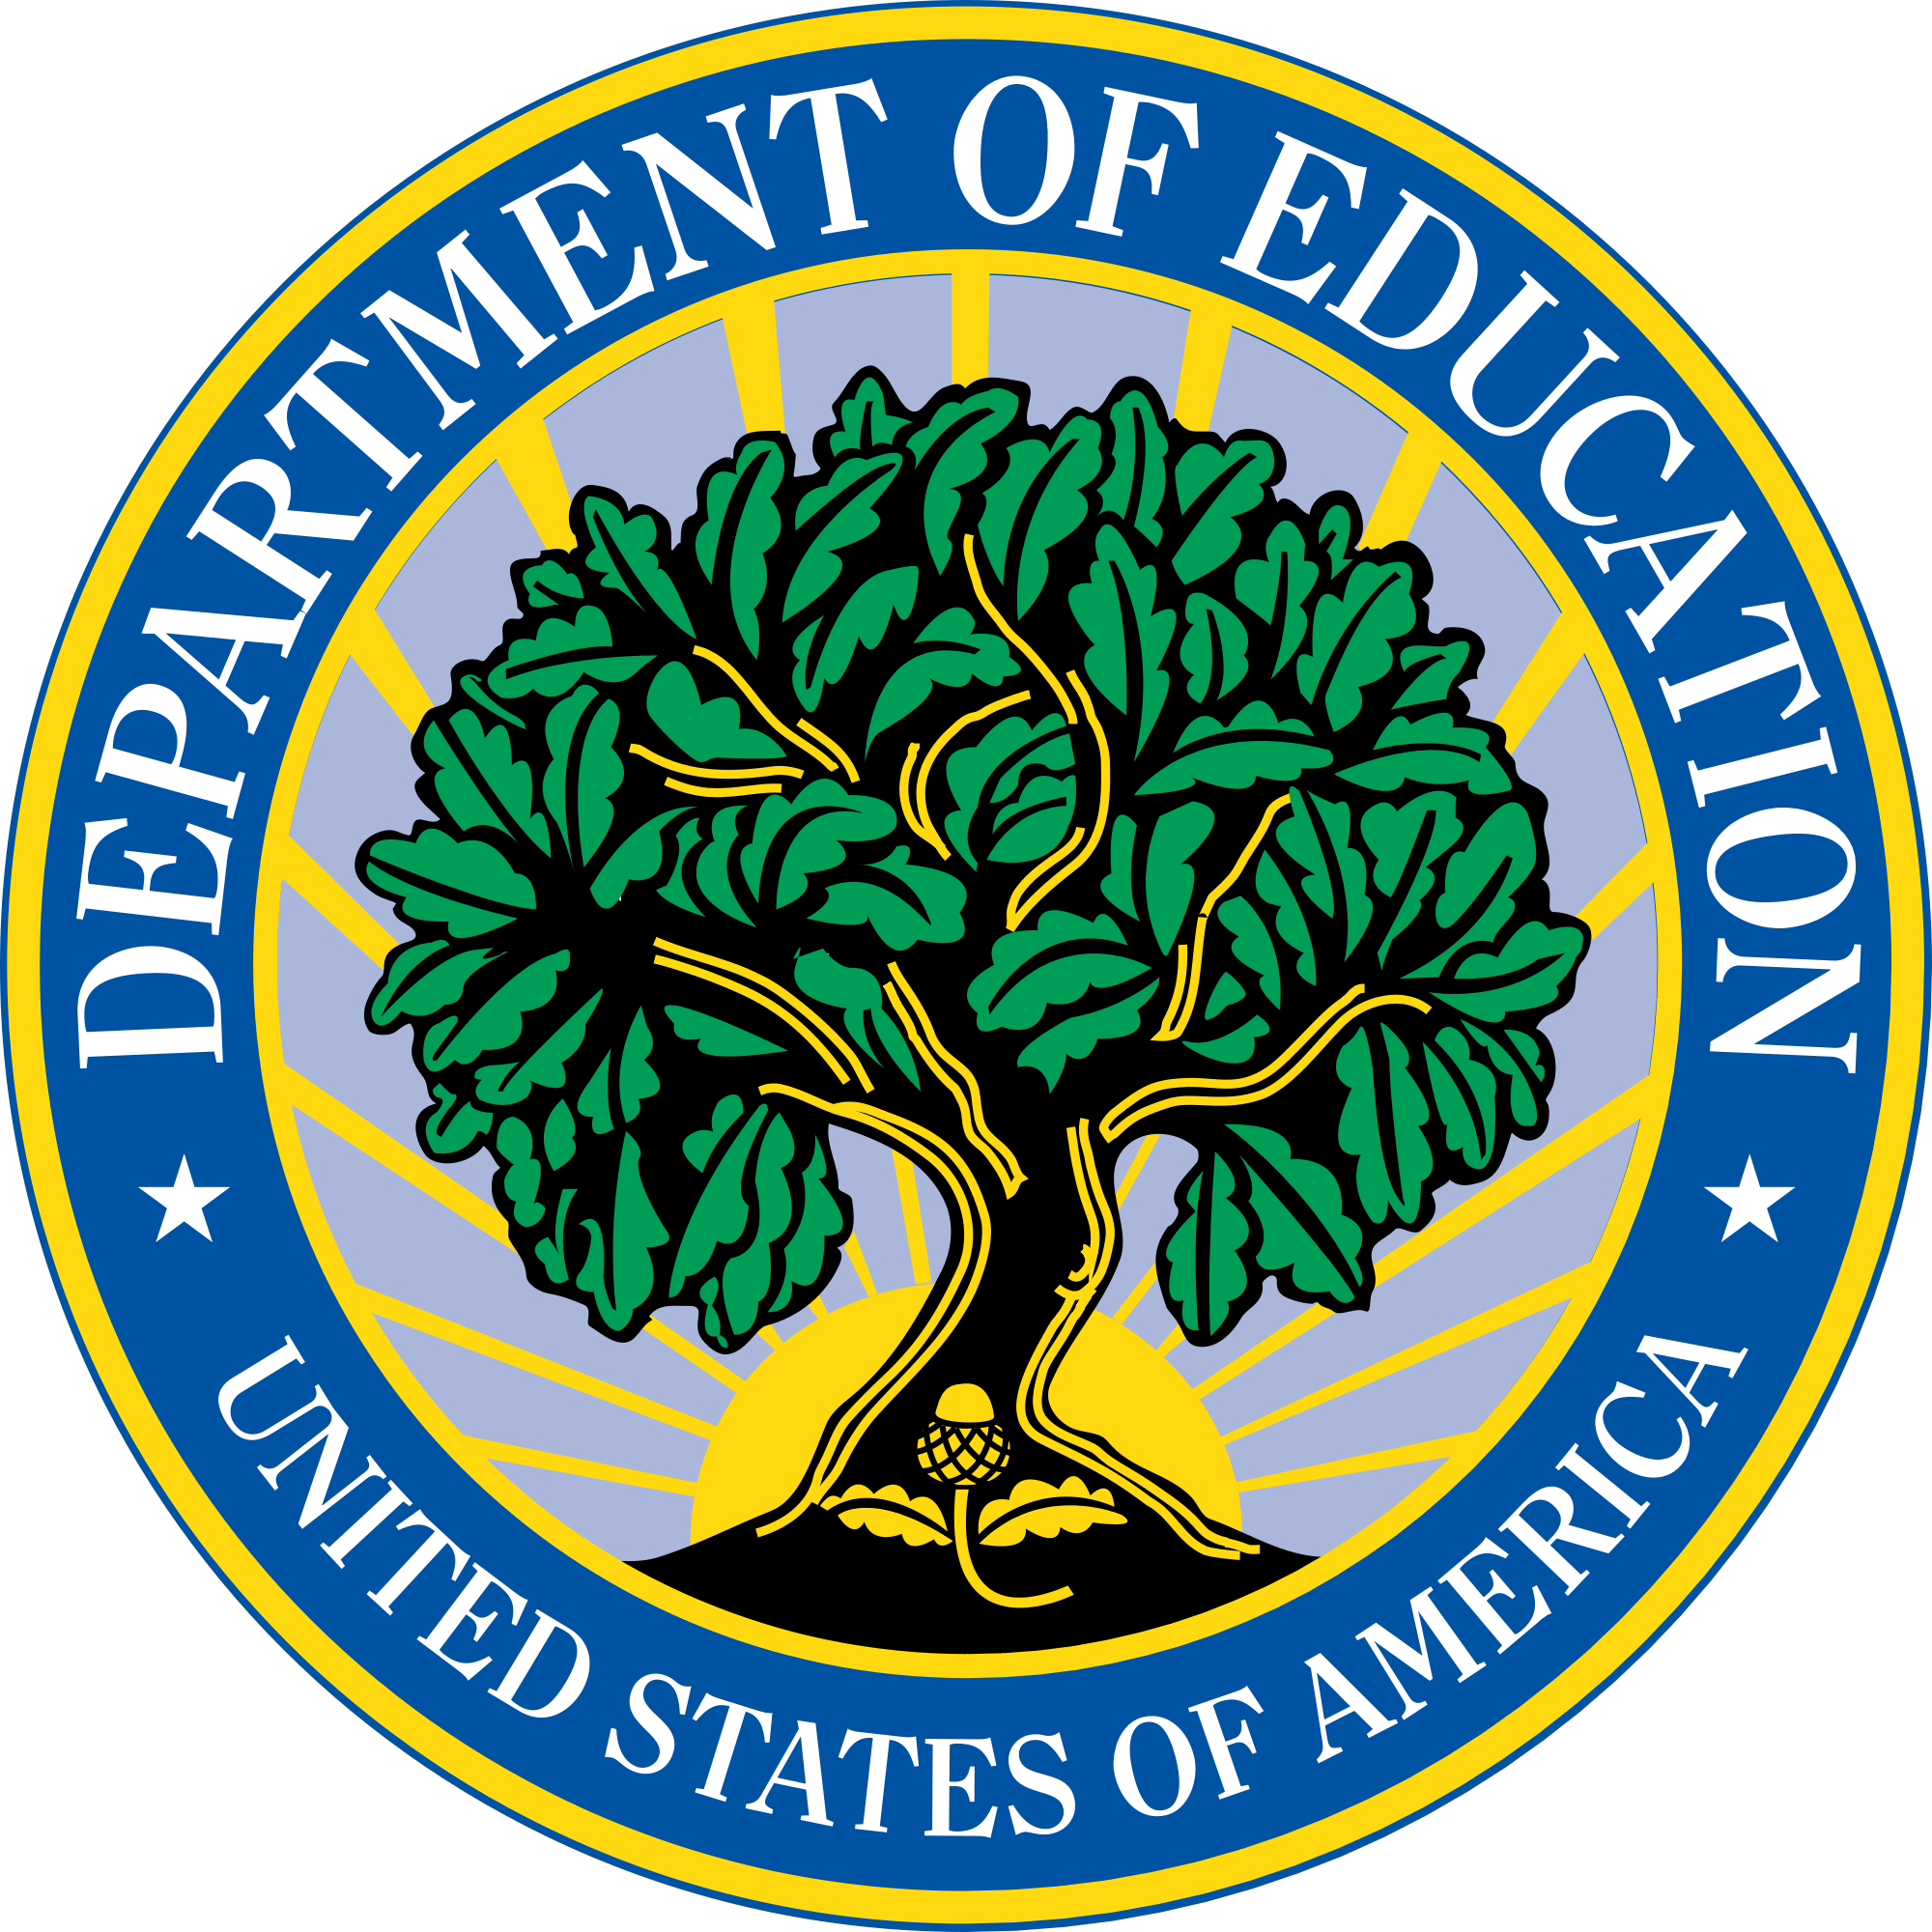 Dept of Ed.png